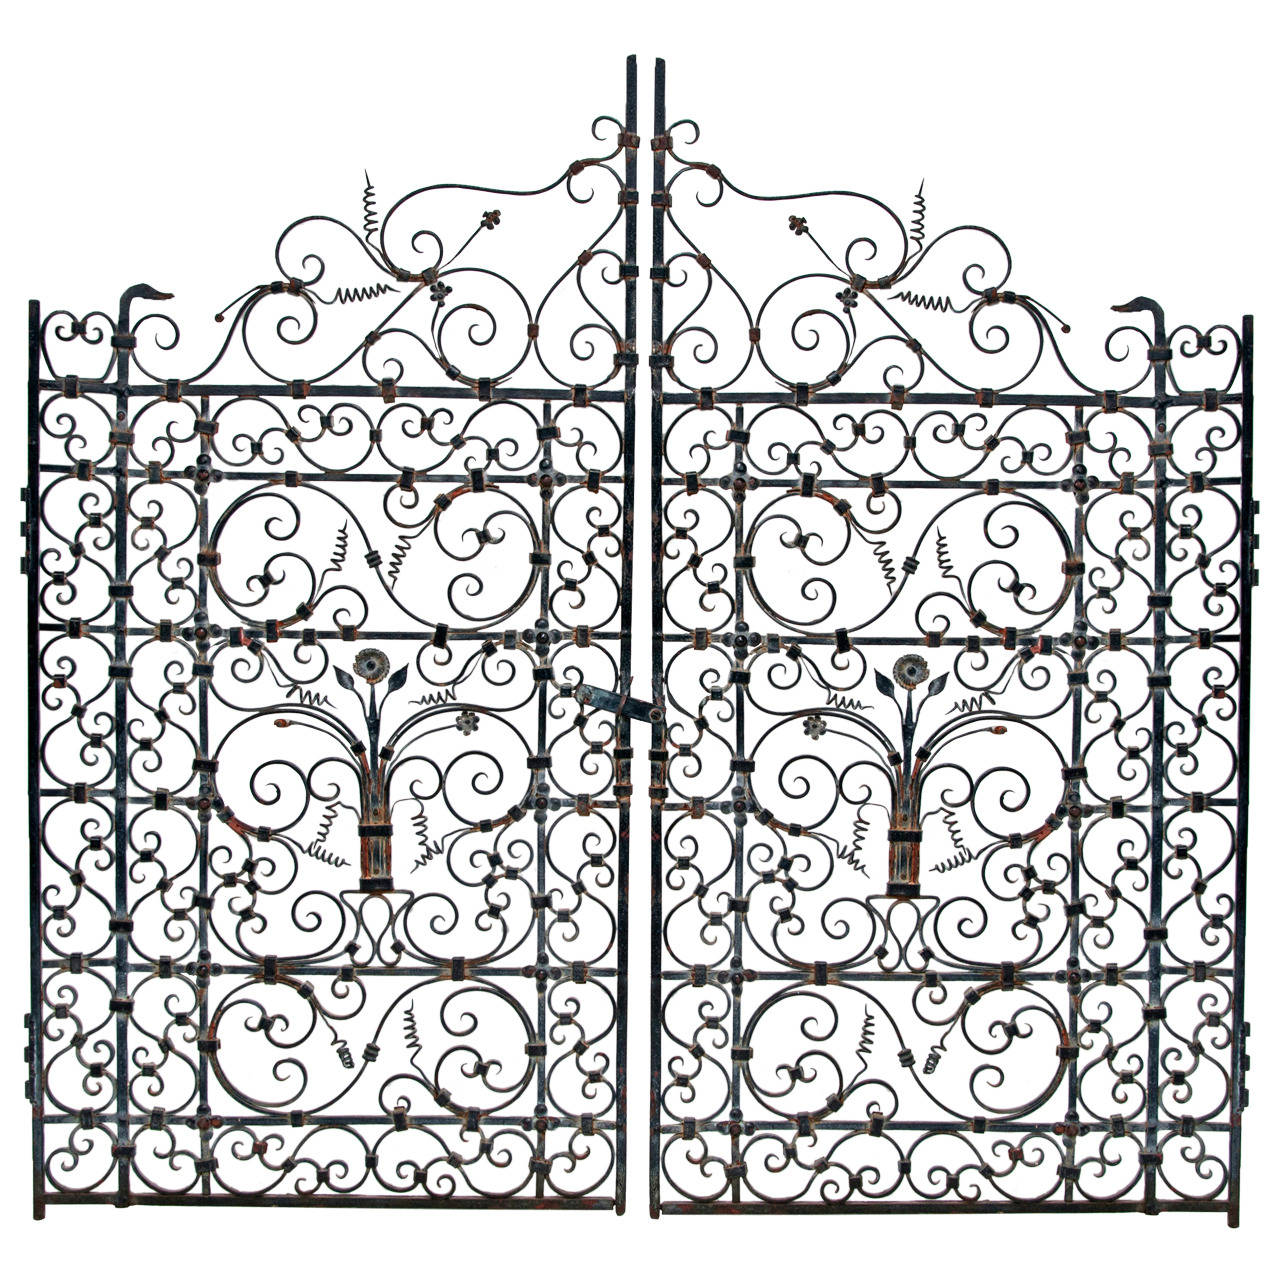 French or Spanish Wrought Iron Garden Gate circa 1820 at